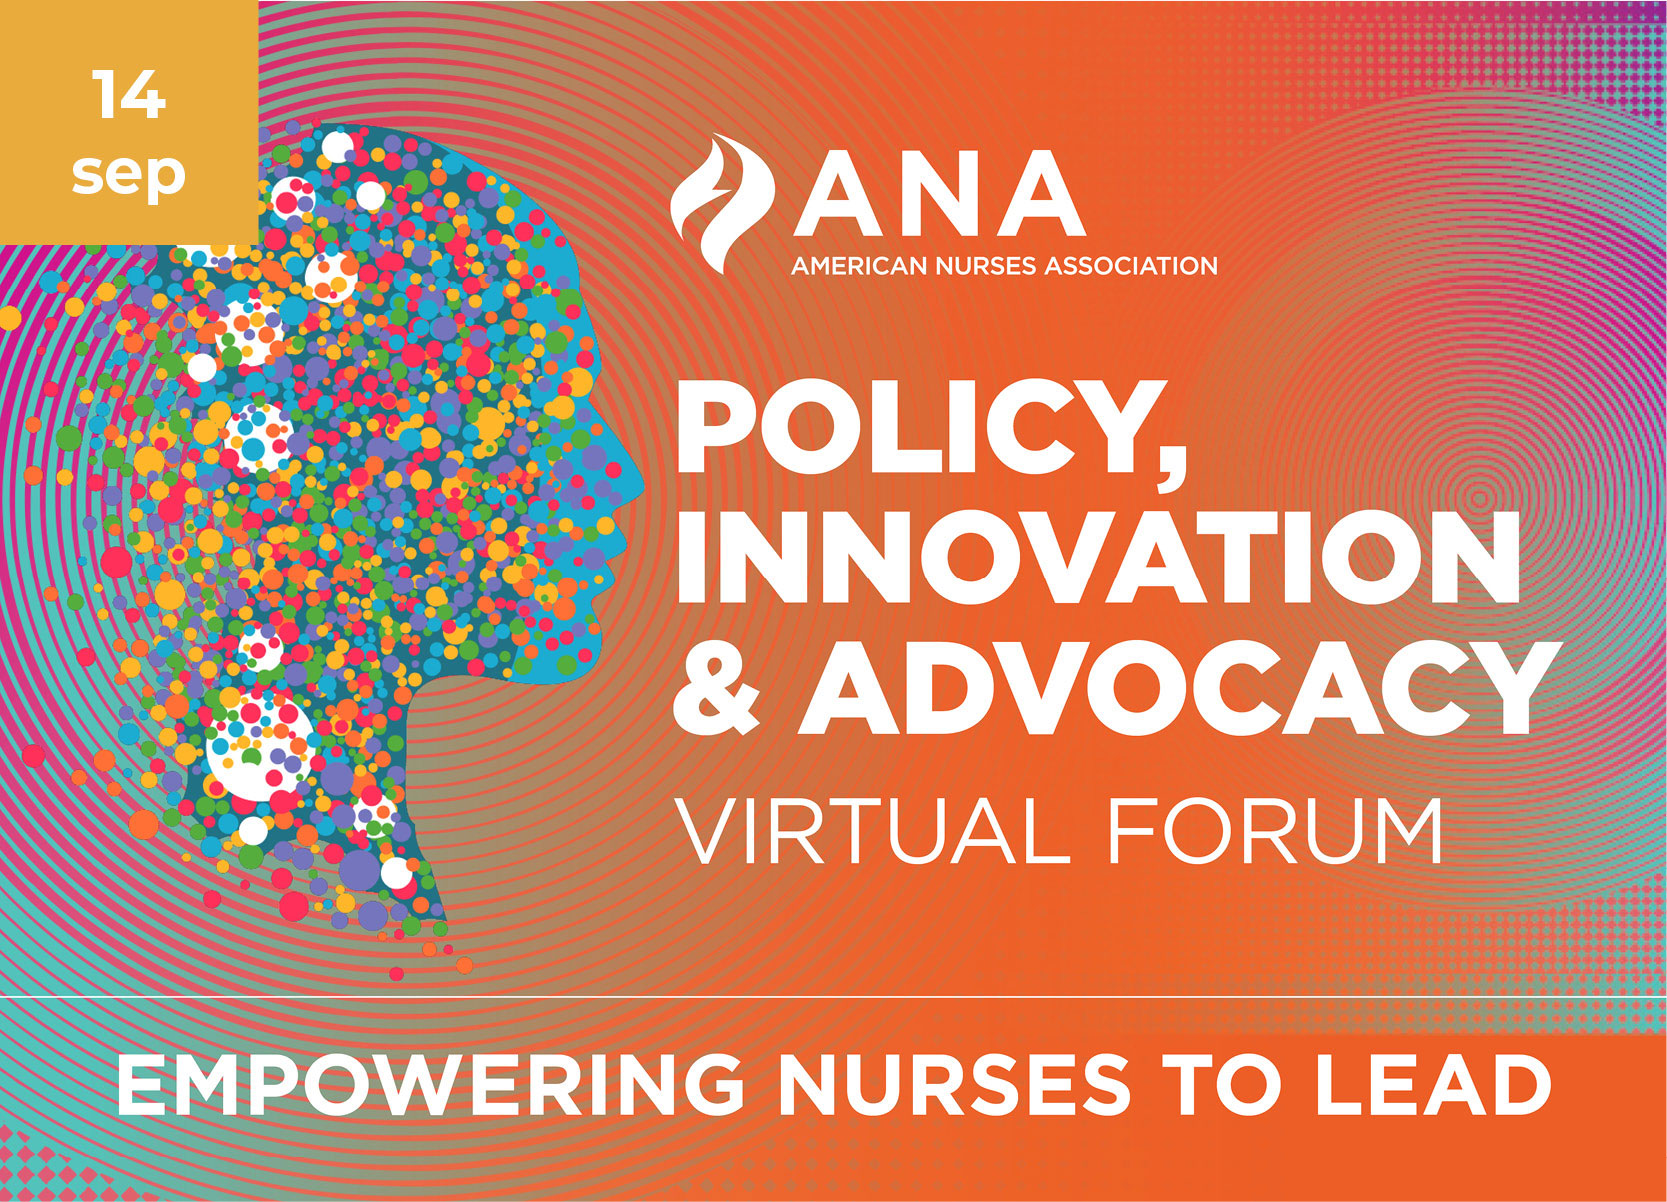 ANA Policy, Innovation and Advocacy Virtual Forum. Empowering Nurses to Succeed. September 14, 2021.